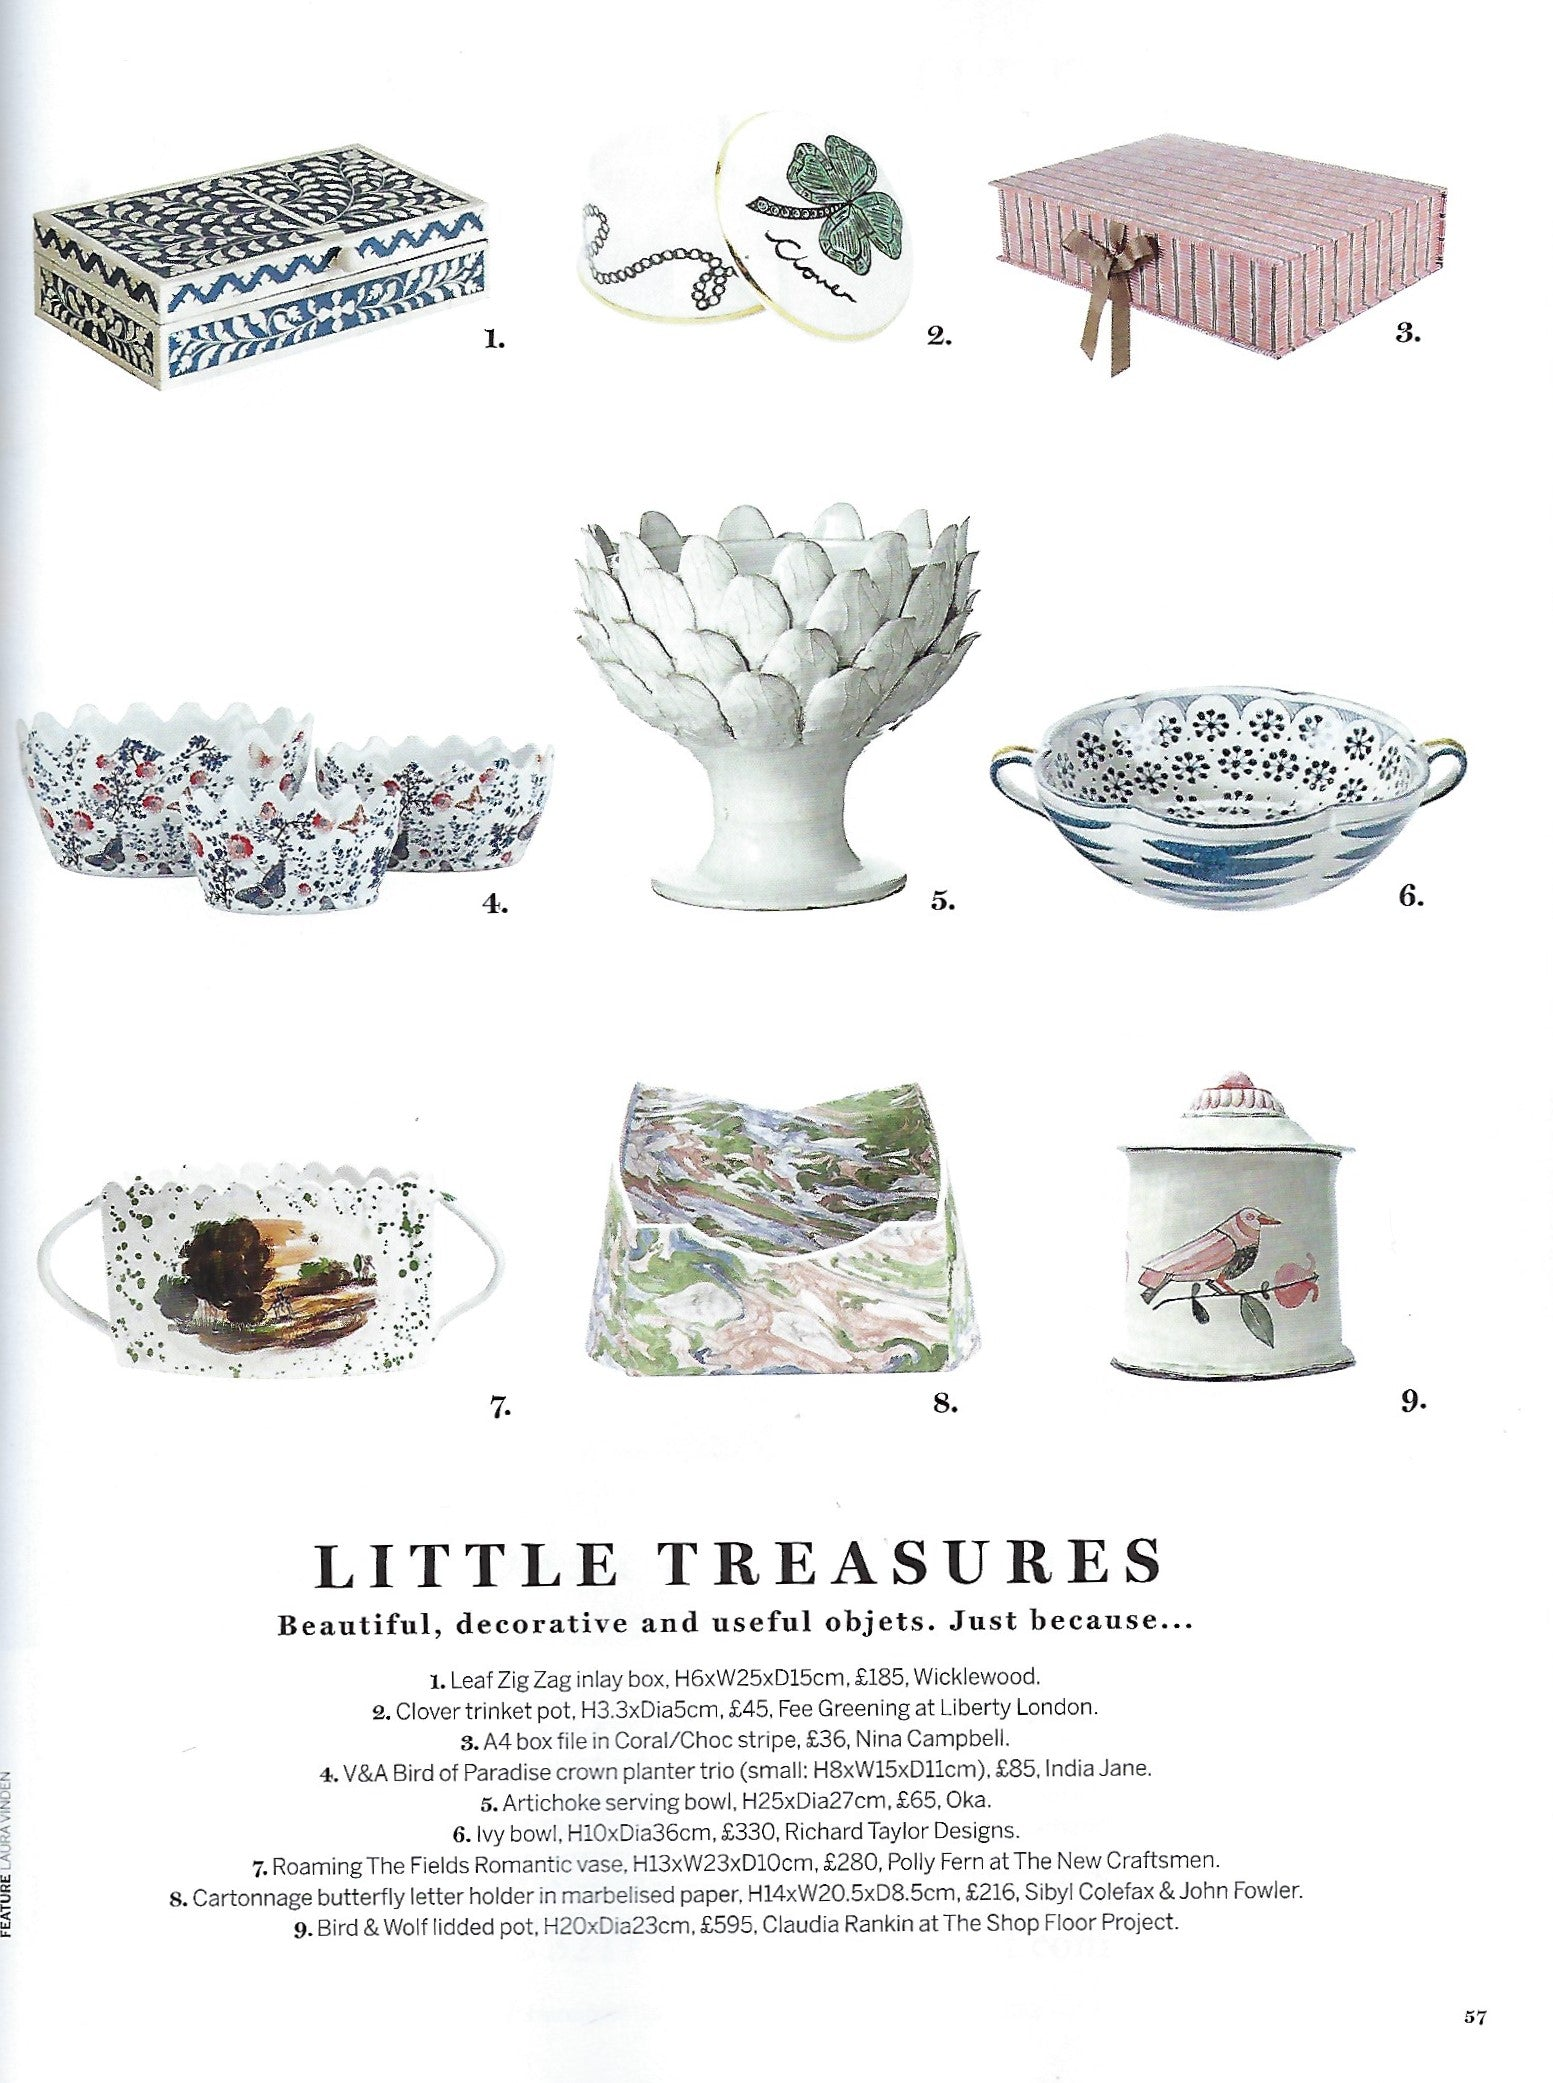 Wicklewood handmade blue bone and wood Indian inlay box featured in Homes & Garden March 2019 issue, in the Little Treasures article